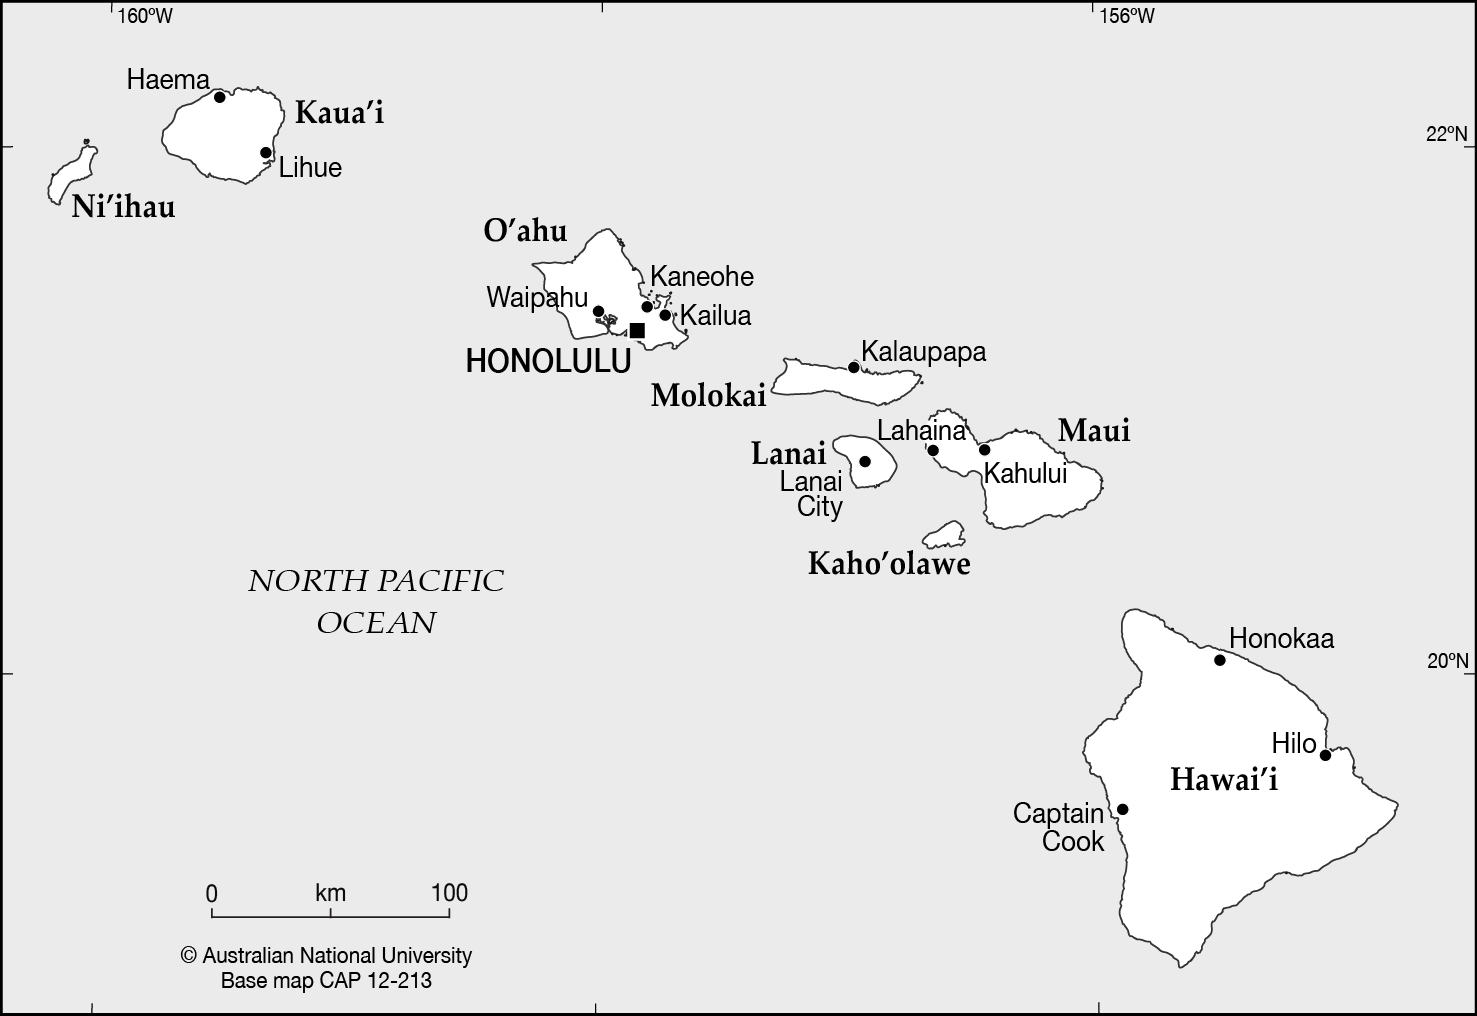 Hawaii Base Cartogis Services Maps Online Anu